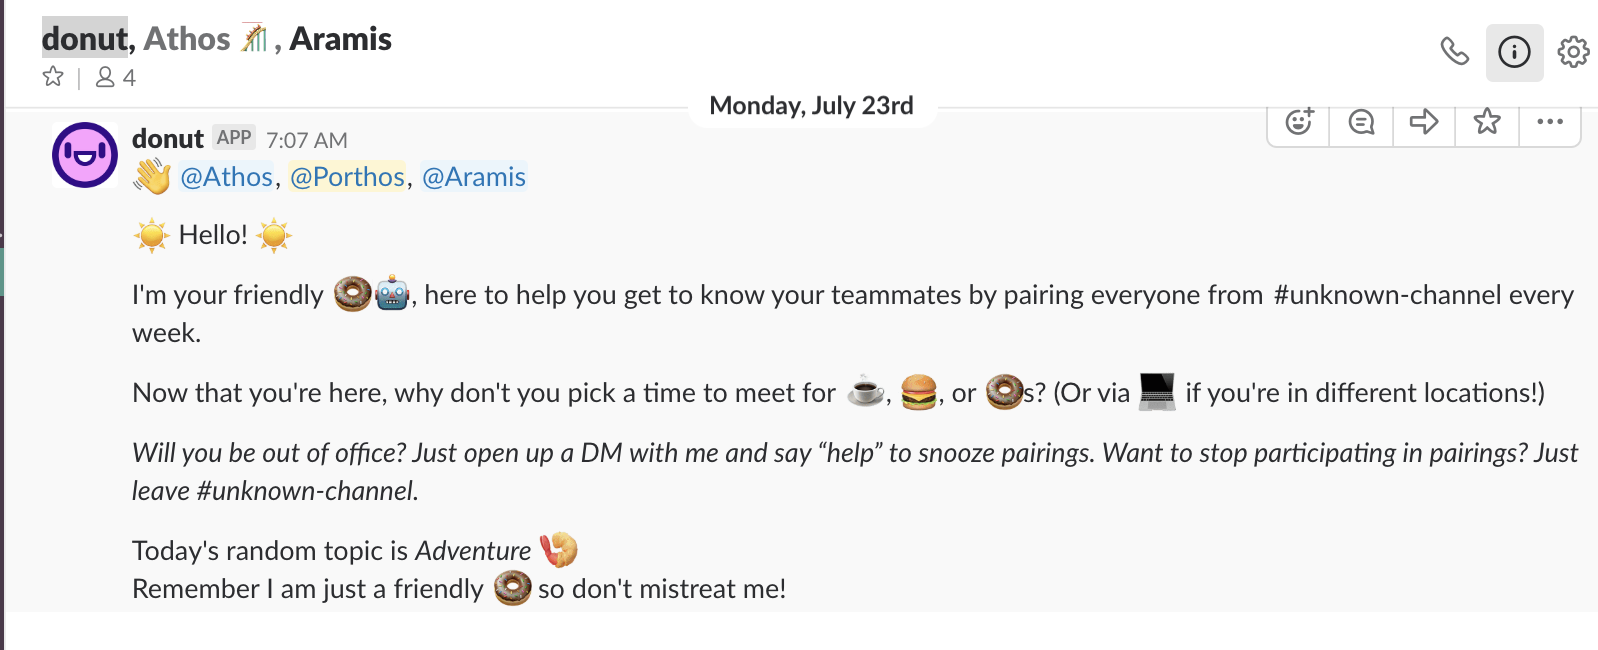 Donut gathering three people into a group message and encouraging them to meet.